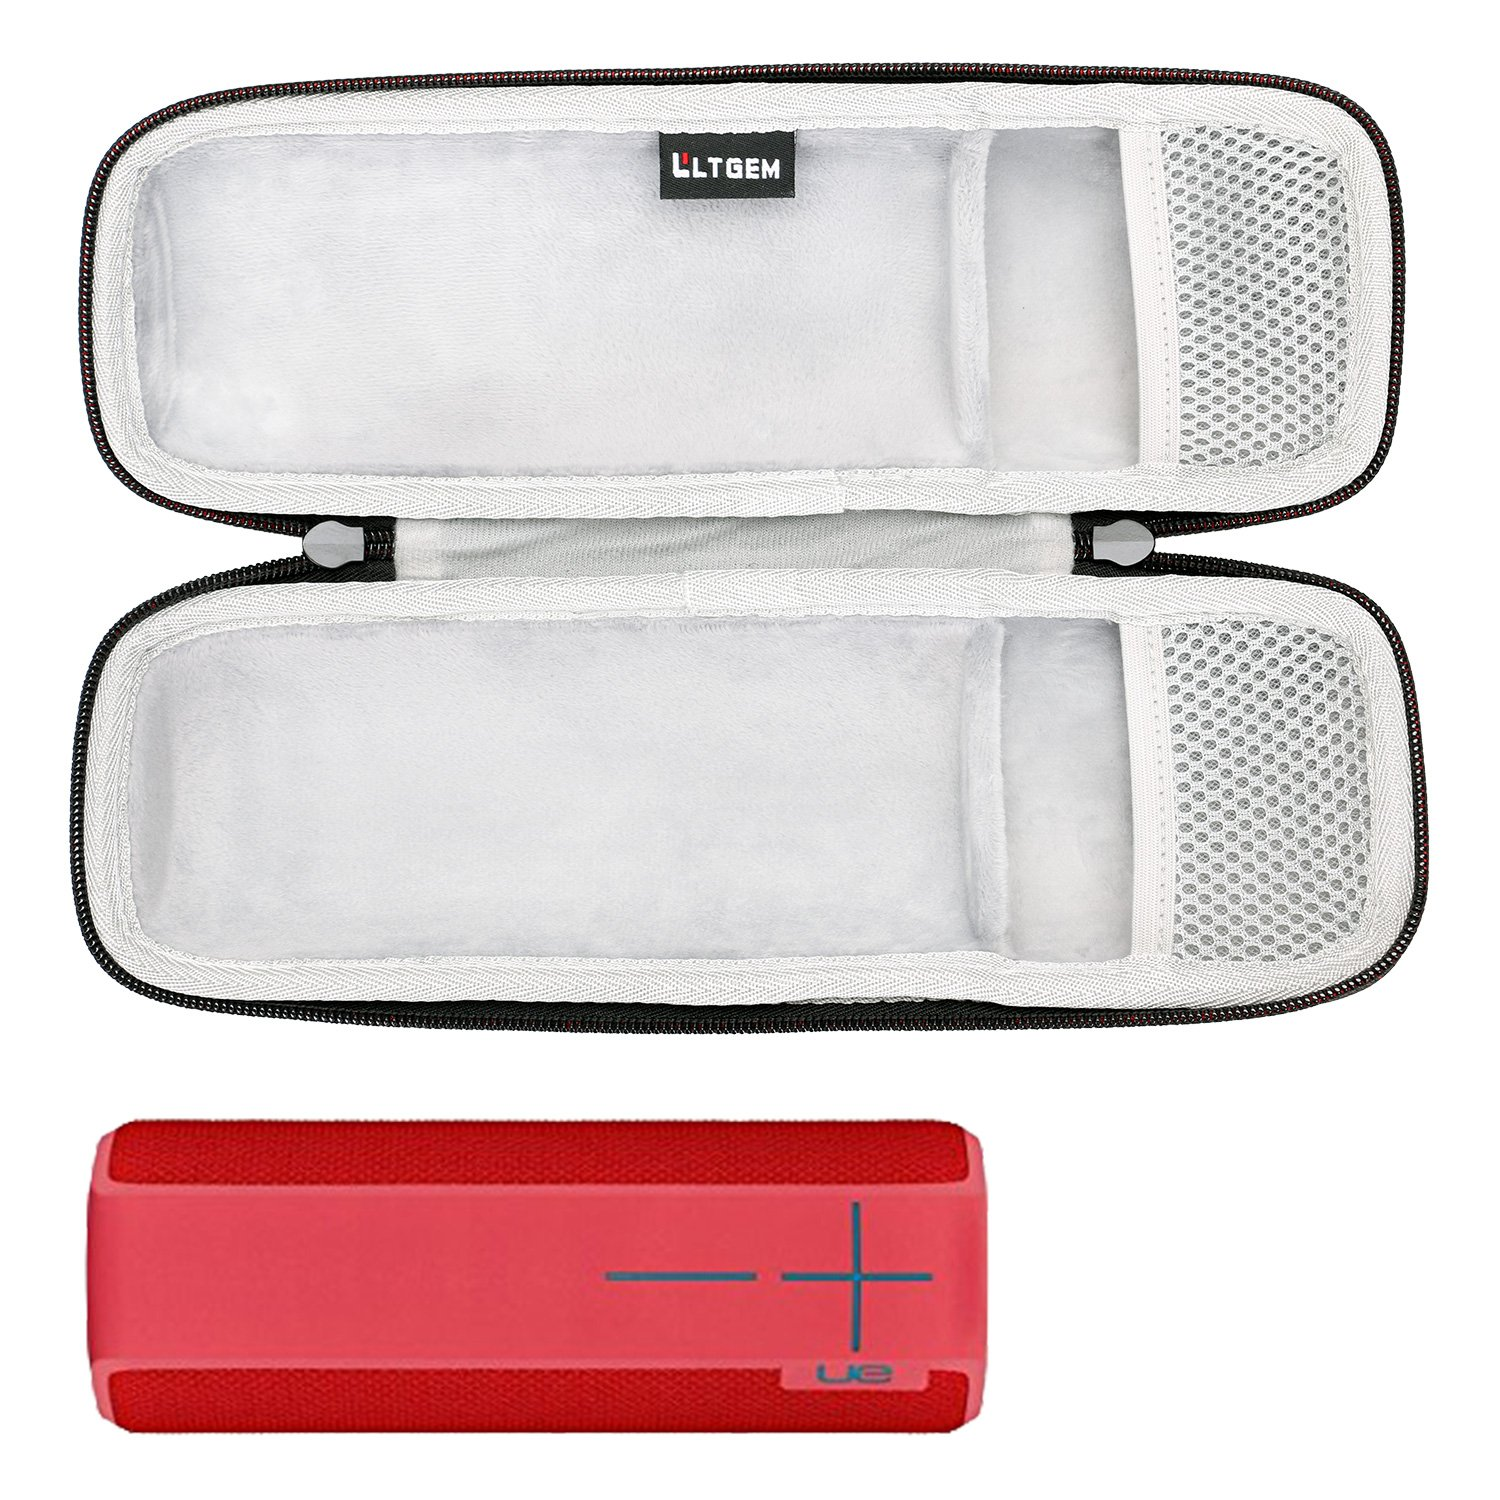 LTGEM EVA Hard Case Travel Carrying Storage Bag for Ultimate Ears UE BOOM 2 Wireless Bluetooth Portable Speaker Fits USB Cable and Wall Charger